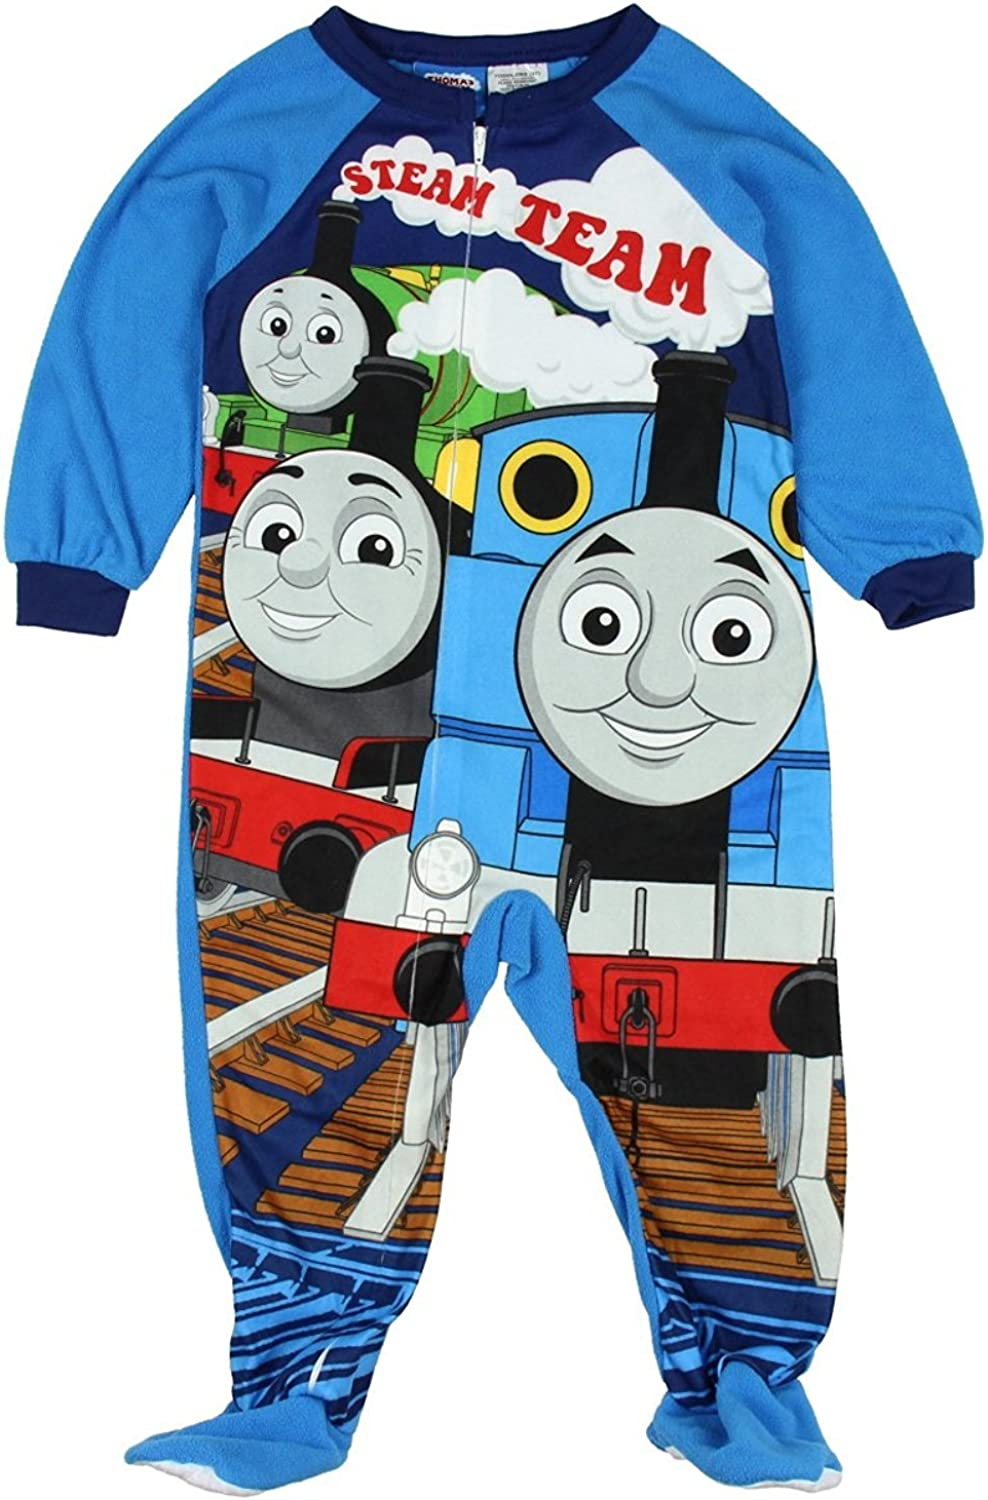 Character Boys Blanket Footed Sleeper Pajama Thomas Set Outlet ☆ Free Shipping Don't miss the campaign 4T The